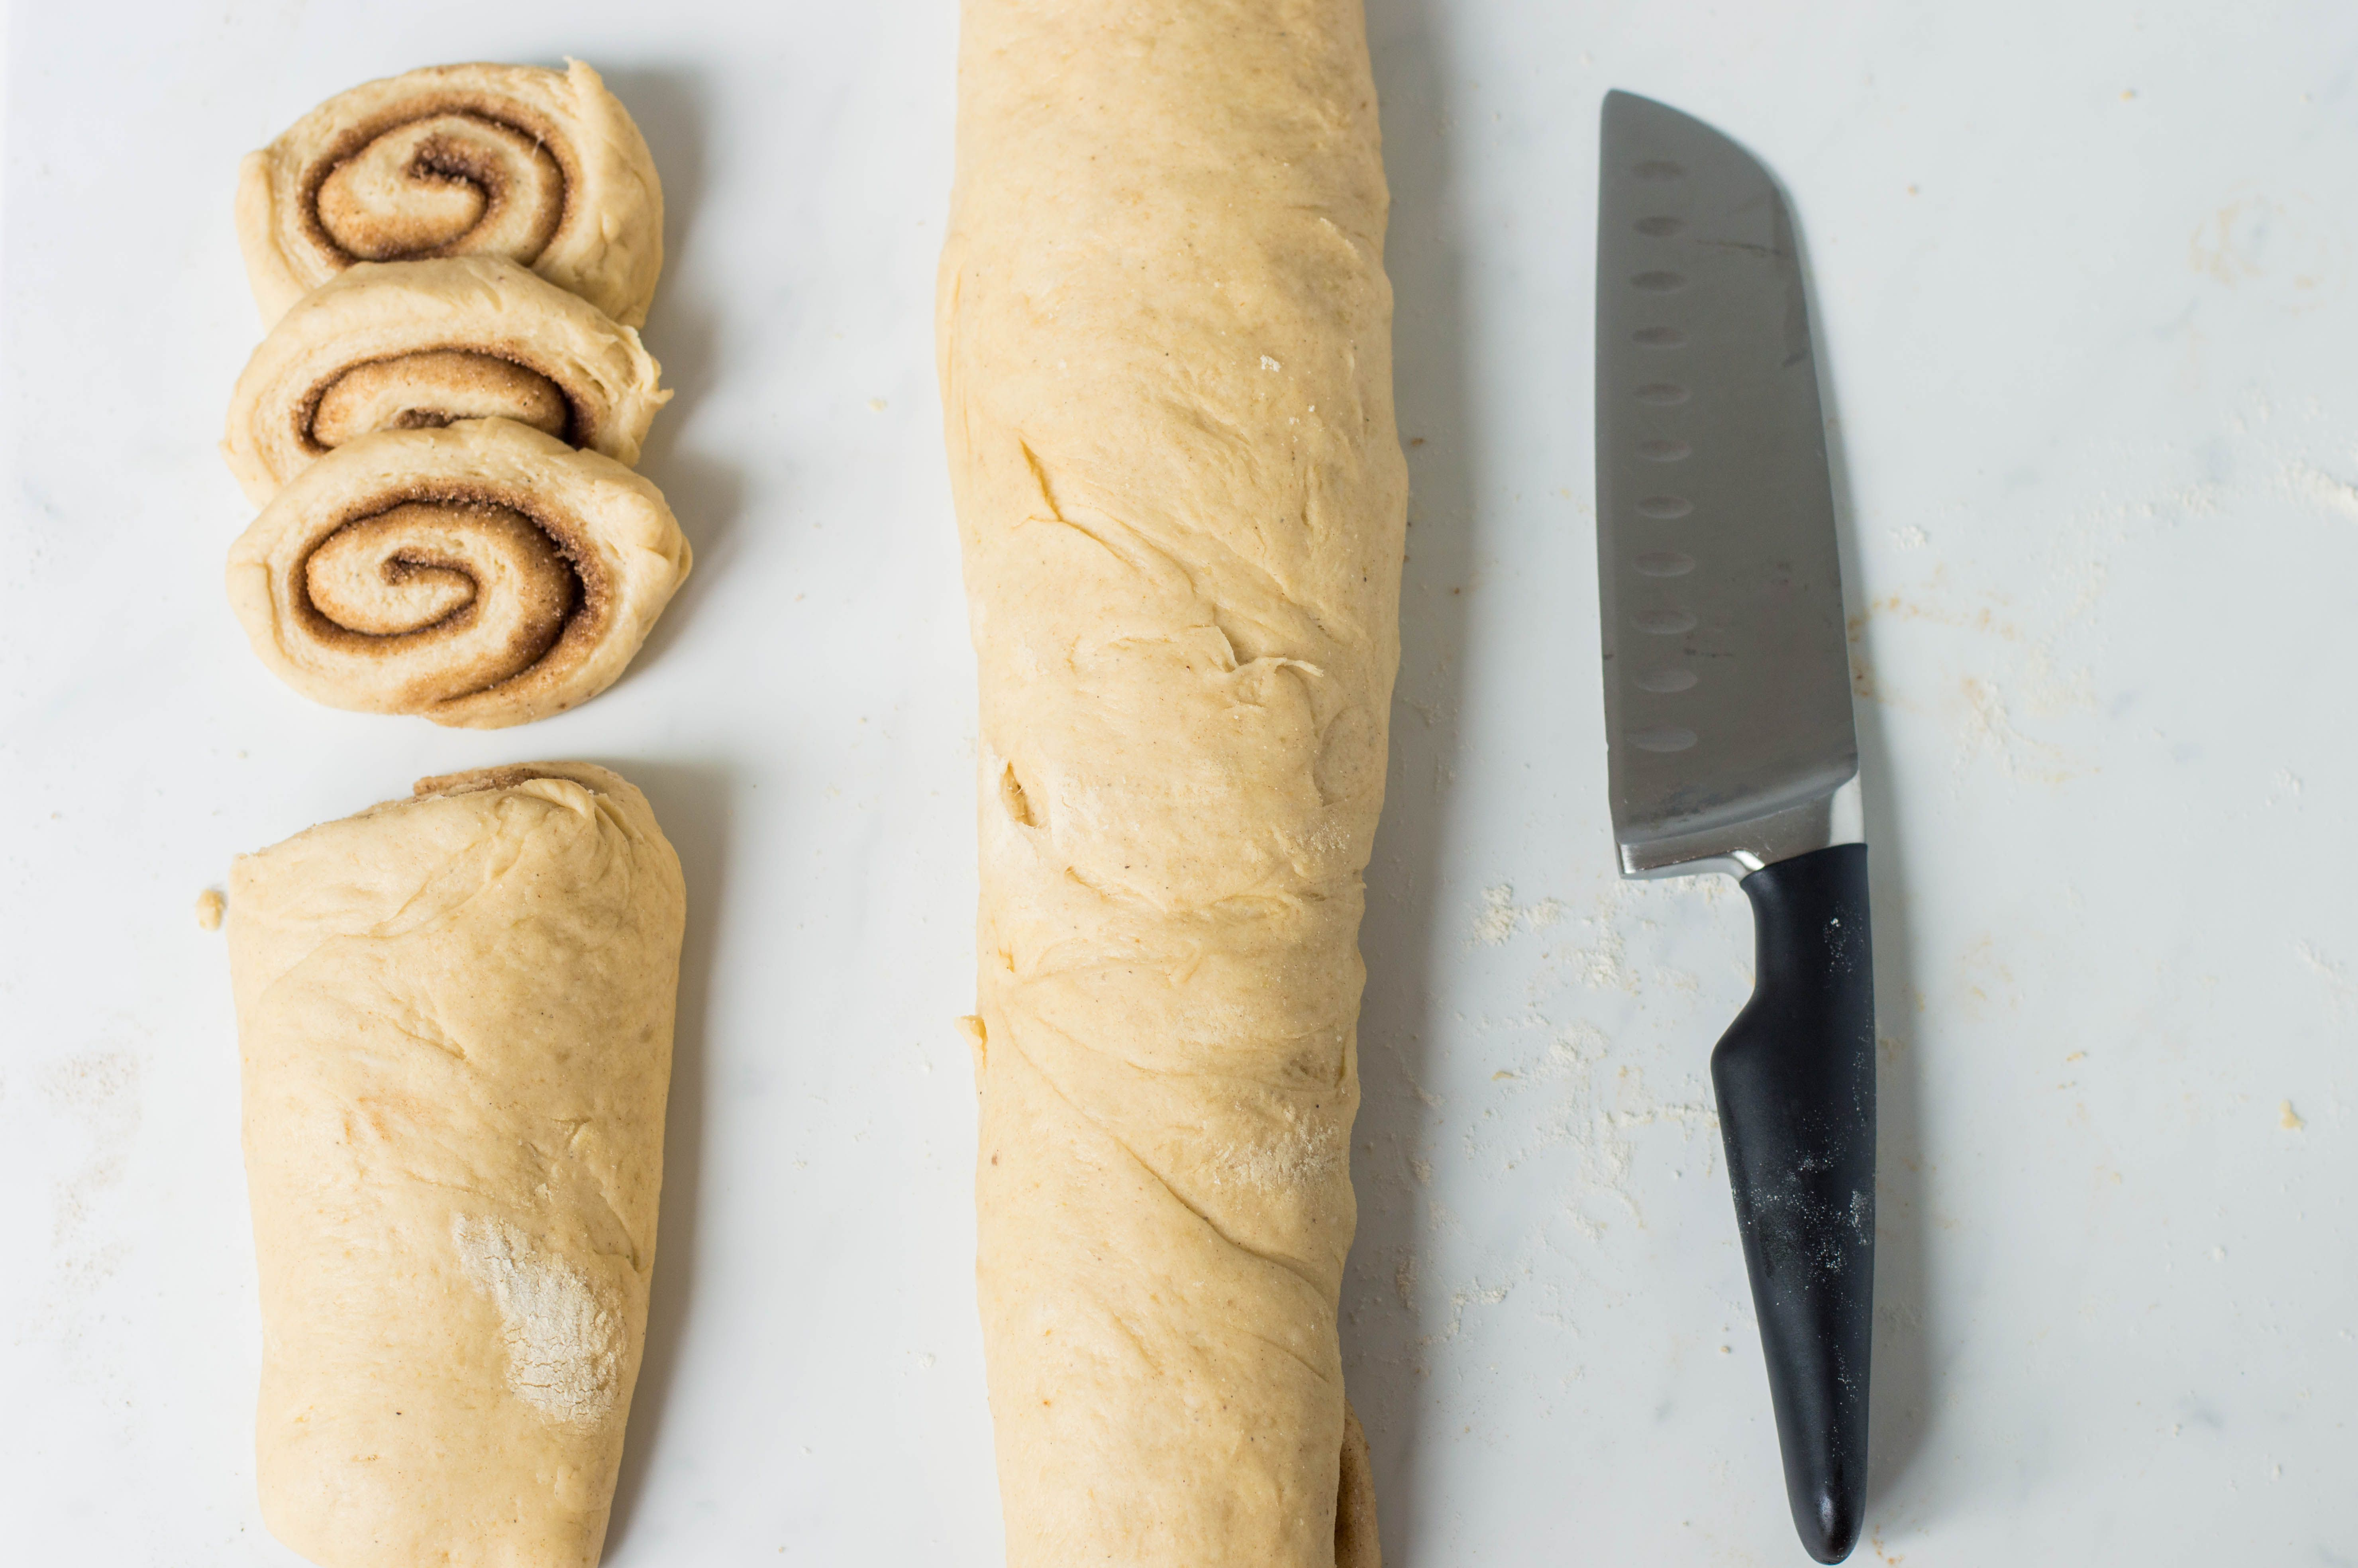 Cutting dough into rounds